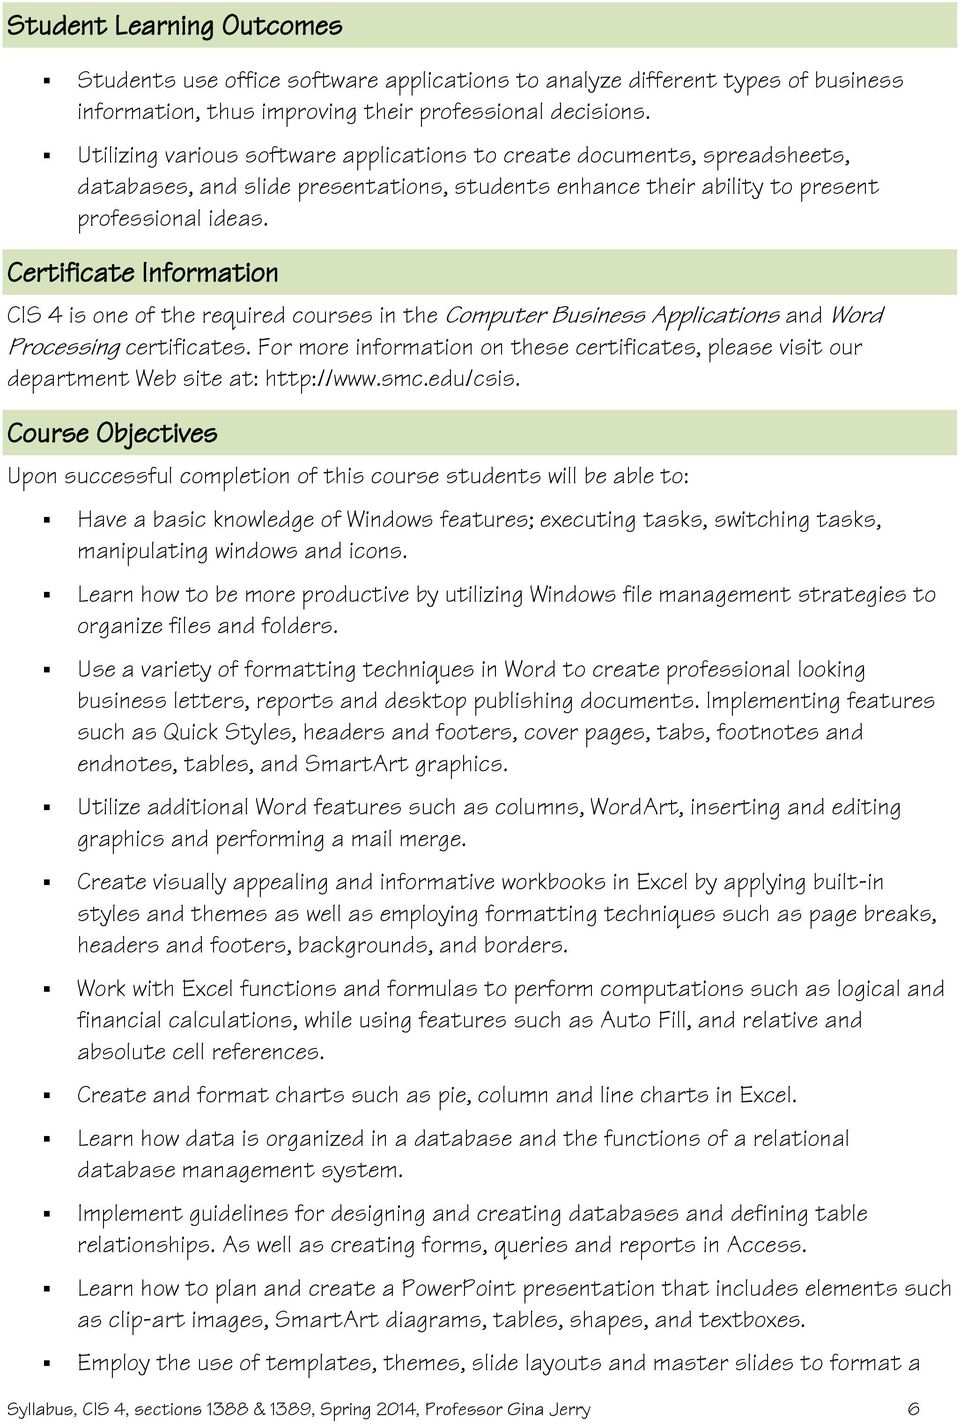 Certificate Information CIS 4 is one of the required courses in the Computer Business Applications and Word Processing certificates.